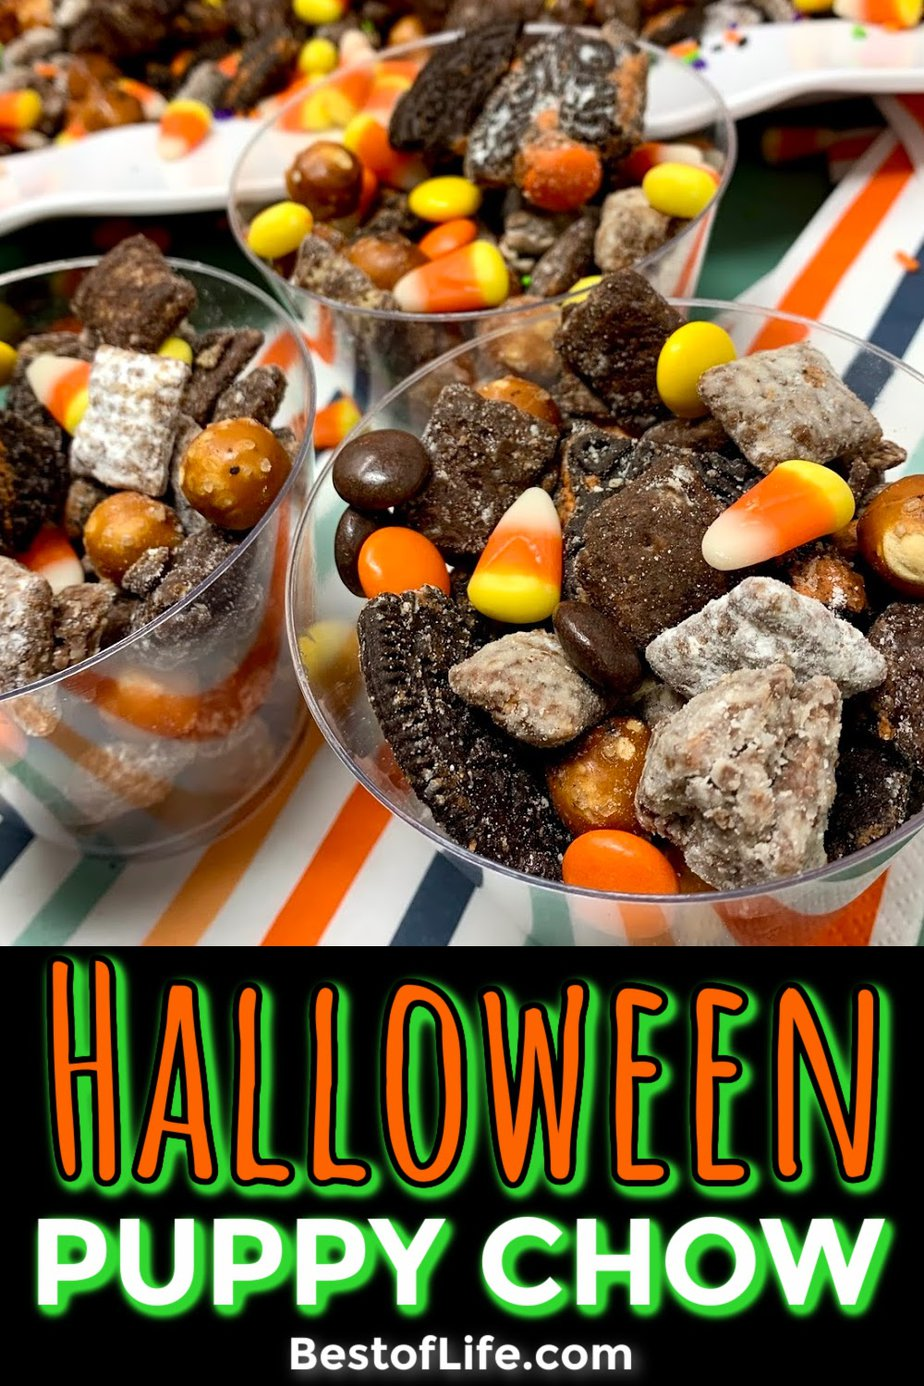 Make this Halloween puppy chow recipe for a fun and festive Halloween party recipe that both kids and adults will enjoy! Halloween Party Recipes | Halloween Snack Recipes | Recipes for Halloween | Snack Recipes for Fall | Fall Treat Recipes | Halloween Puppy Chow Chex Mix Recipe | Check Mix Snack Ideas #halloween #puppychow